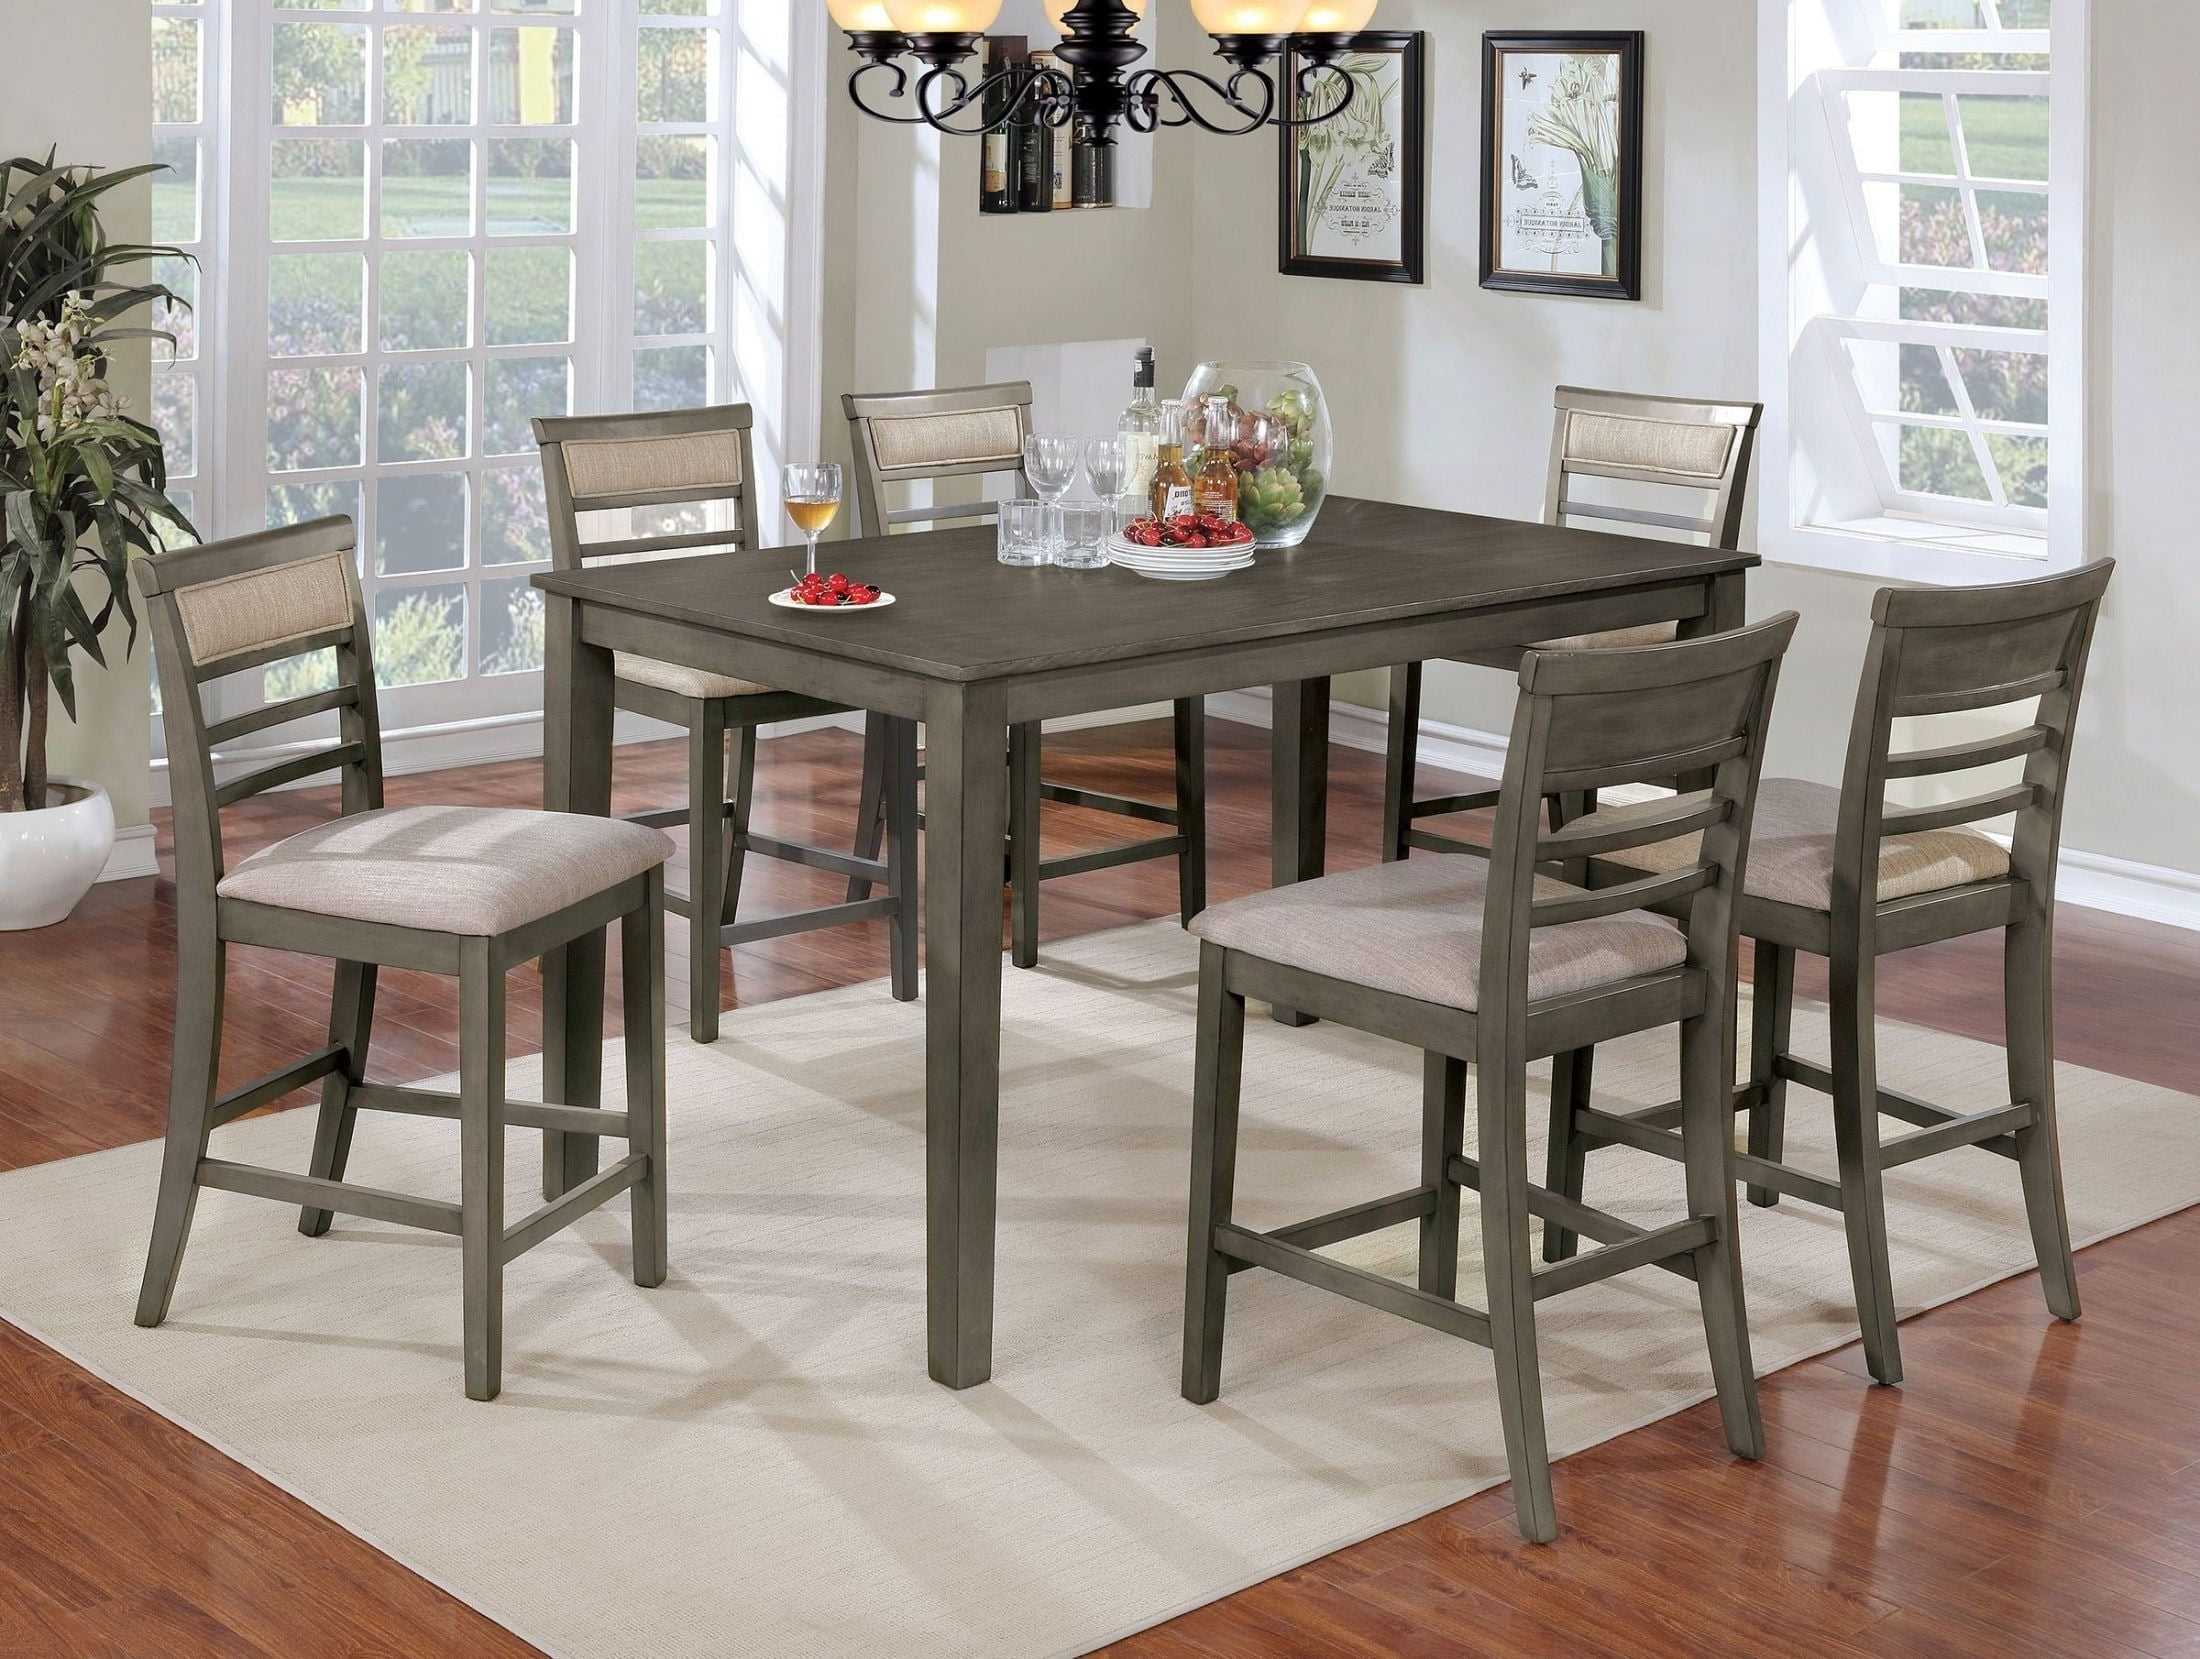 2018 Laurent 7 Piece Rectangle Dining Sets With Wood Chairs In Fafnir Gray 7 Piece Counter Height Dining Room Set From Furniture Of (View 10 of 25)